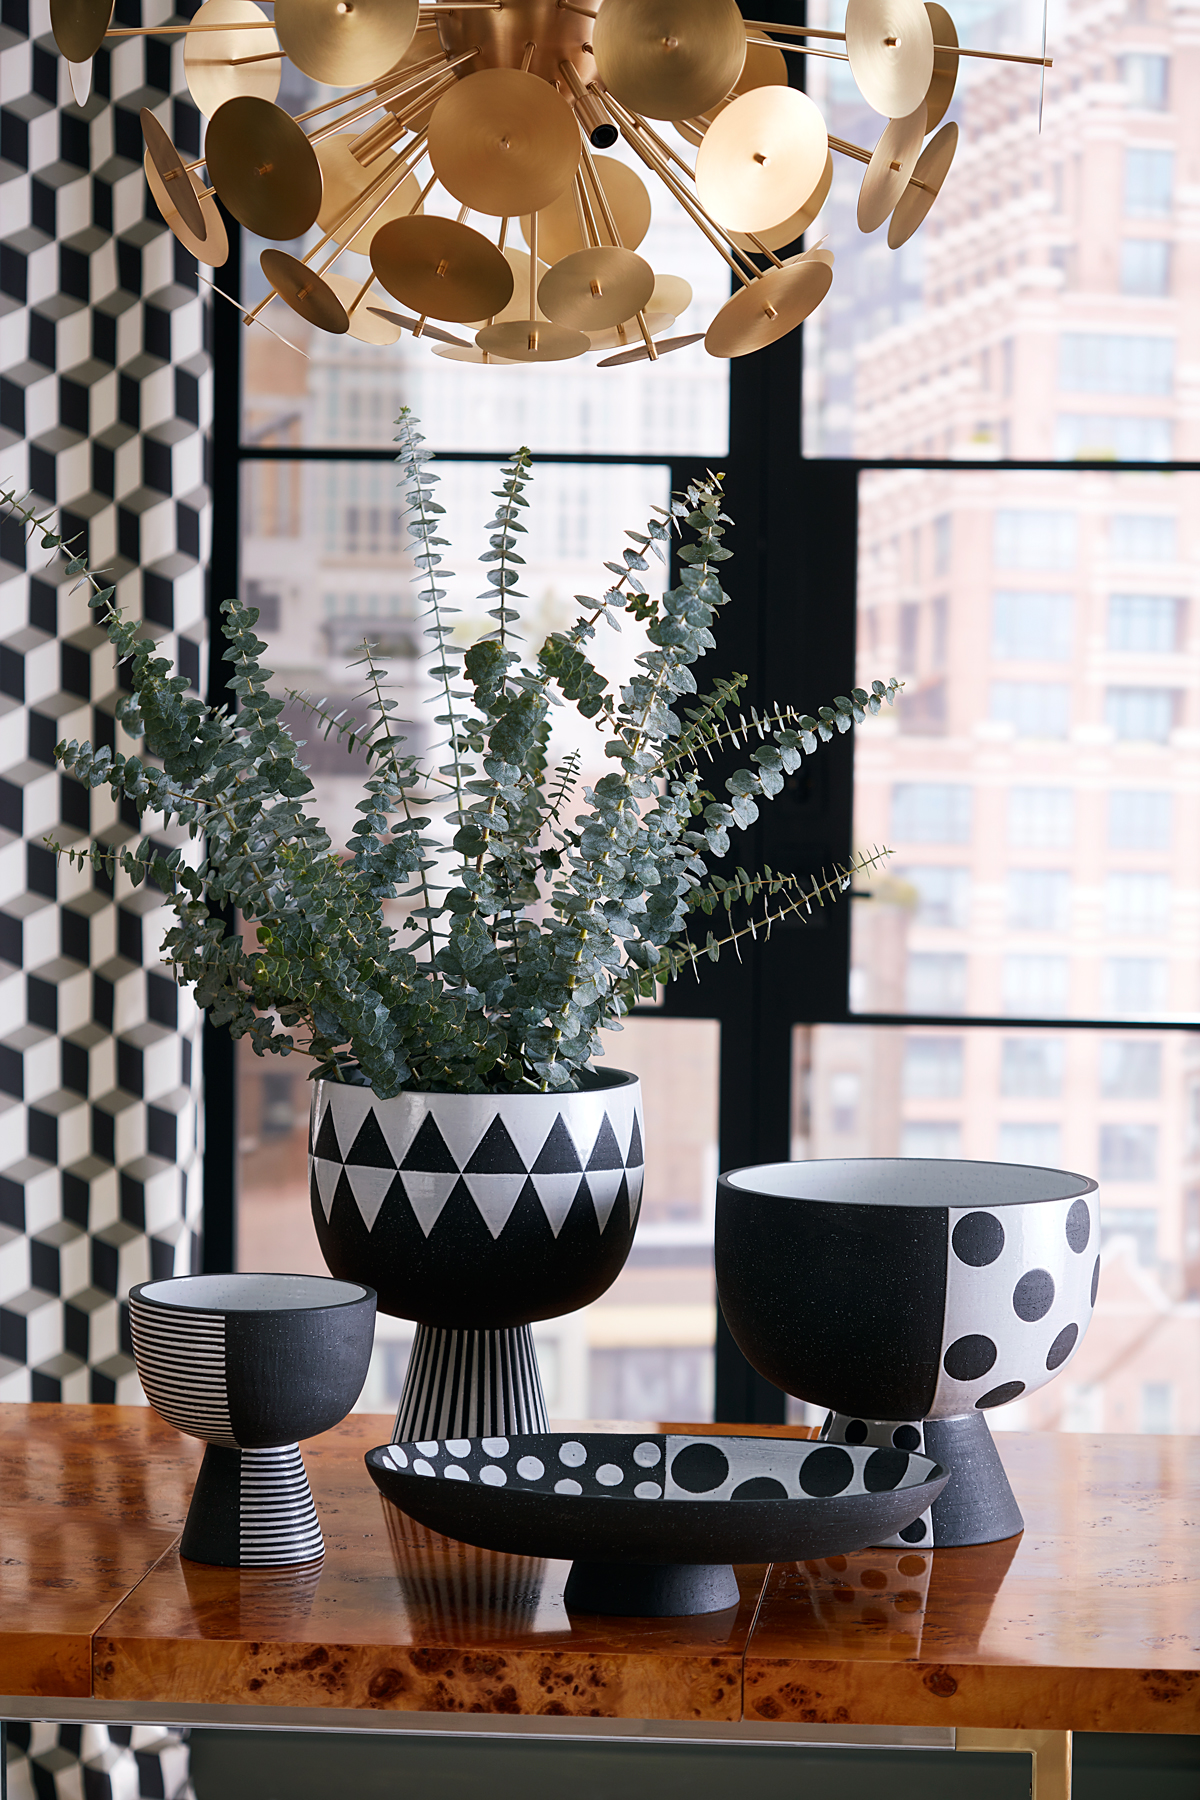 In the monochrome mix: 11 standout designs